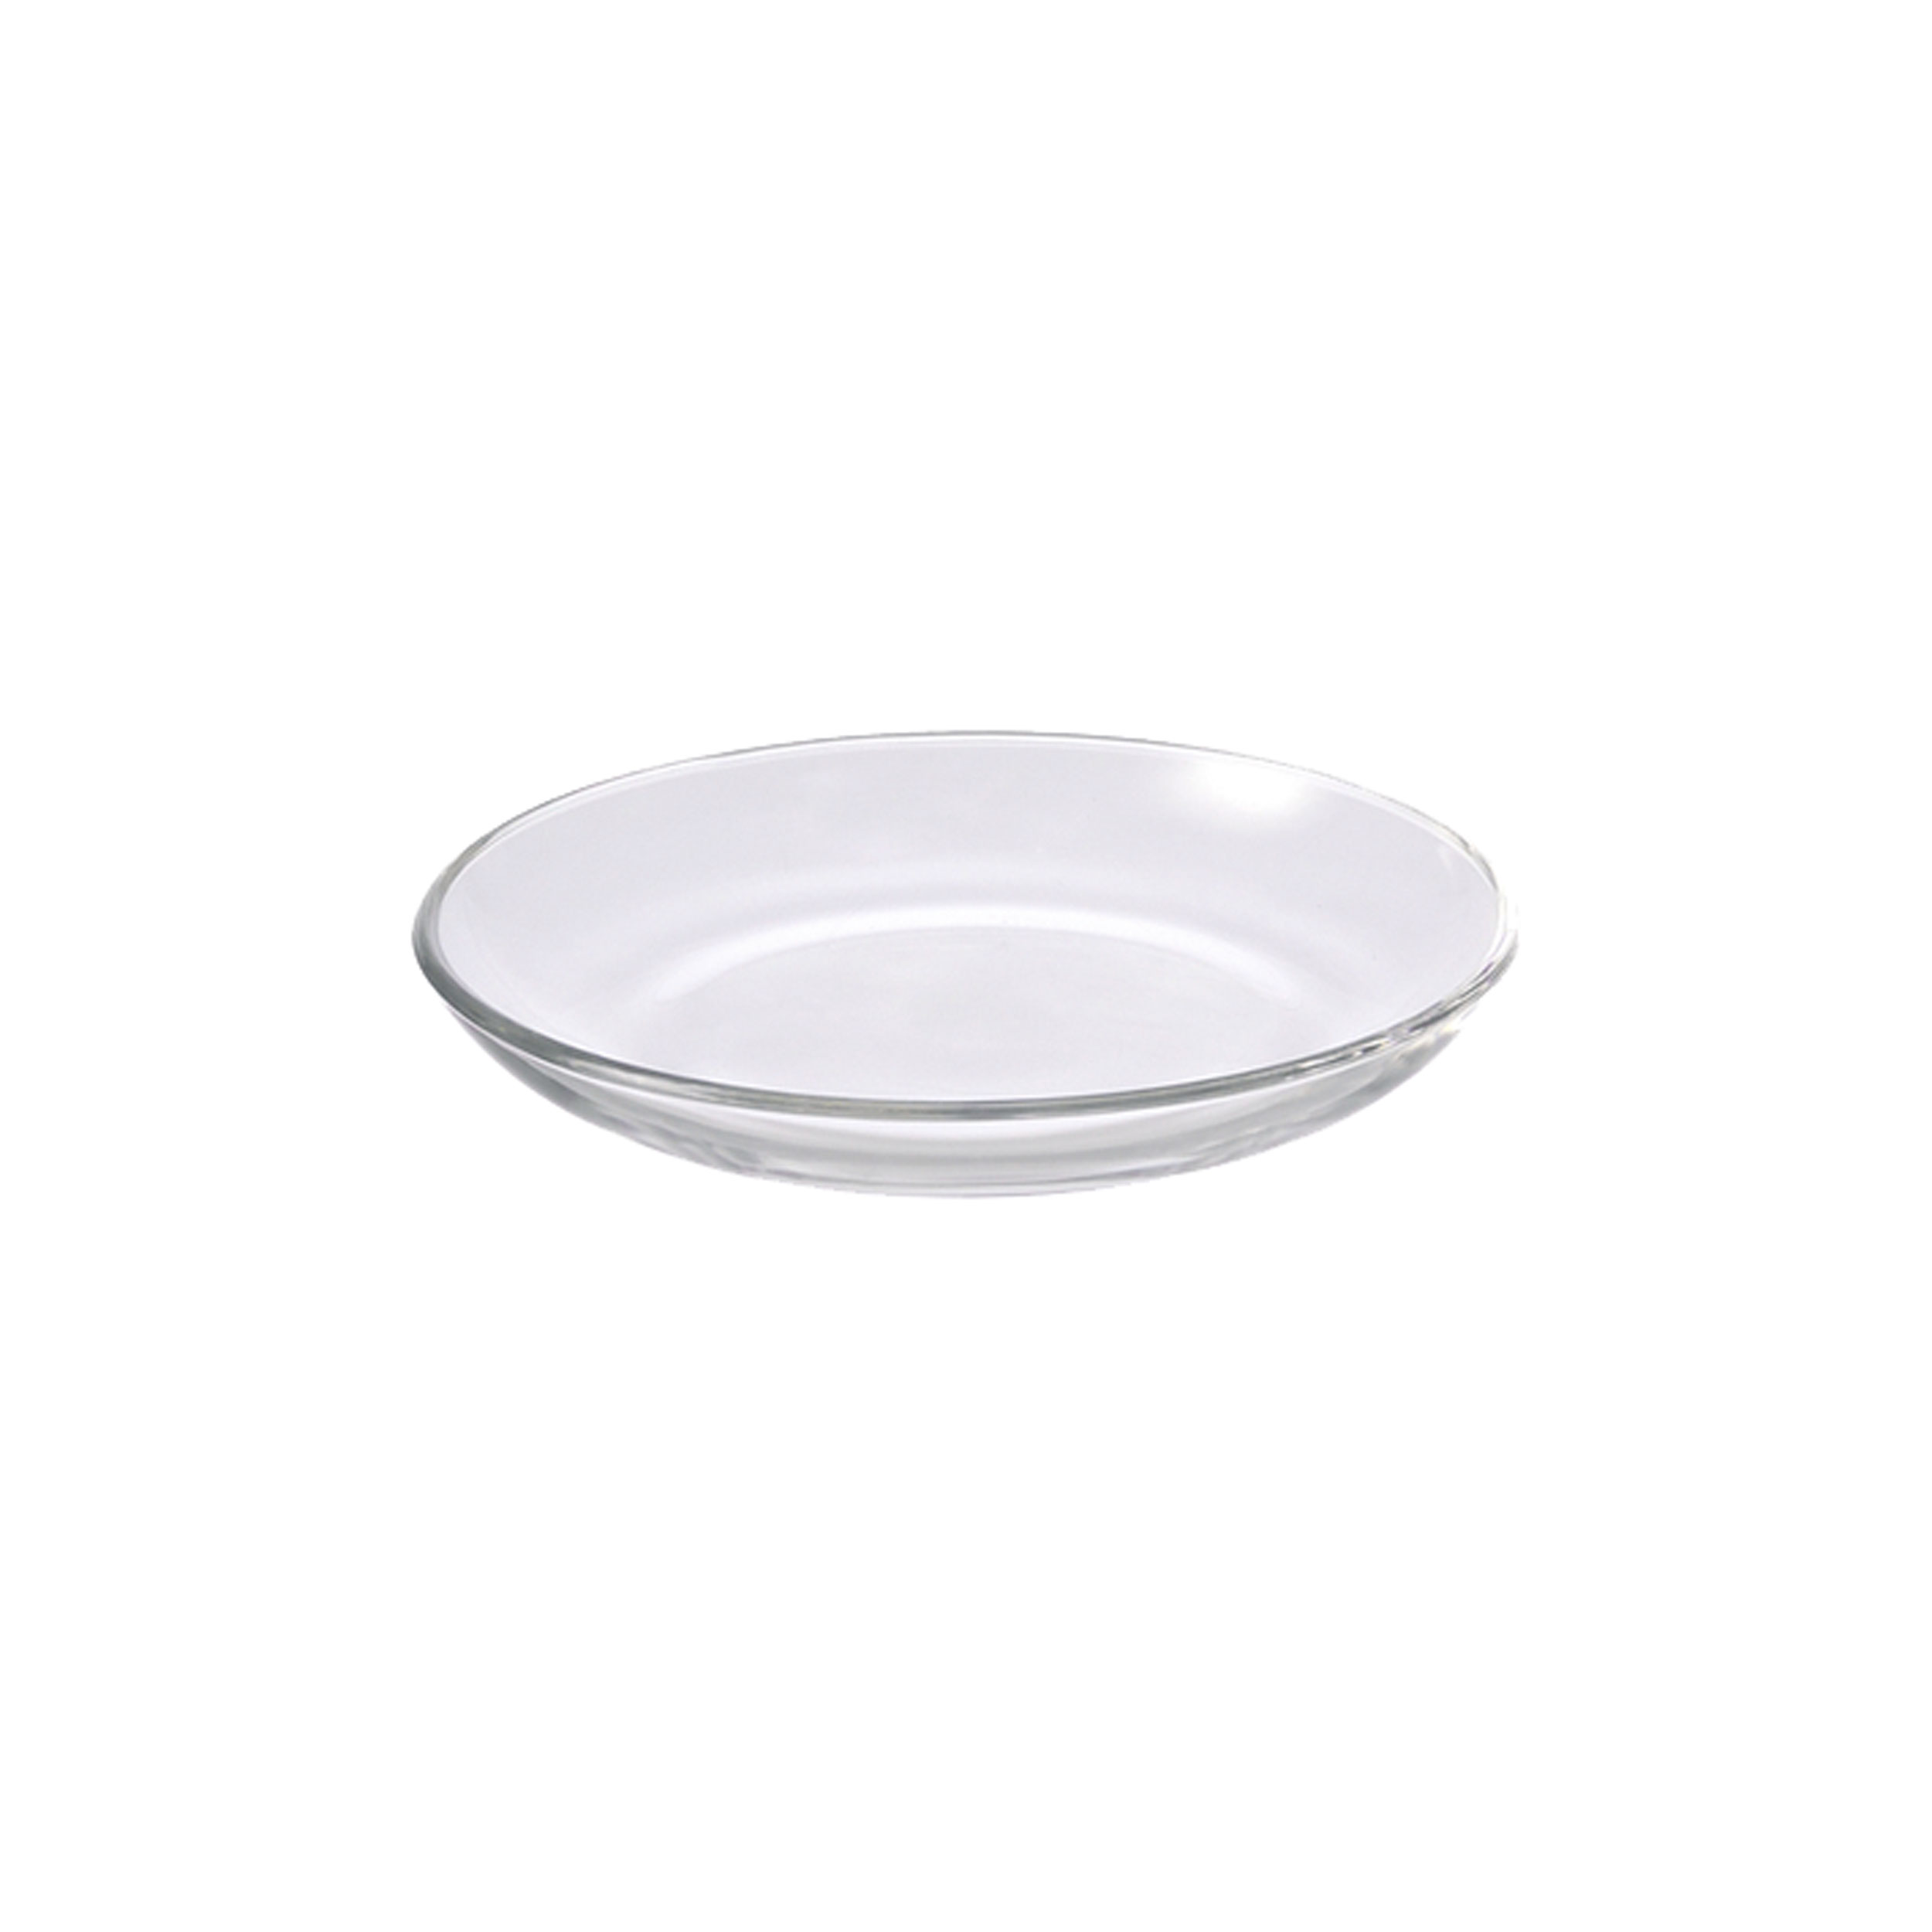 Kuchenteller Glas Leonardo Active Plate Glass Plate Kitchen Plate Glass Platter Glass D 17 Cm 20695 At About Tea De Shop